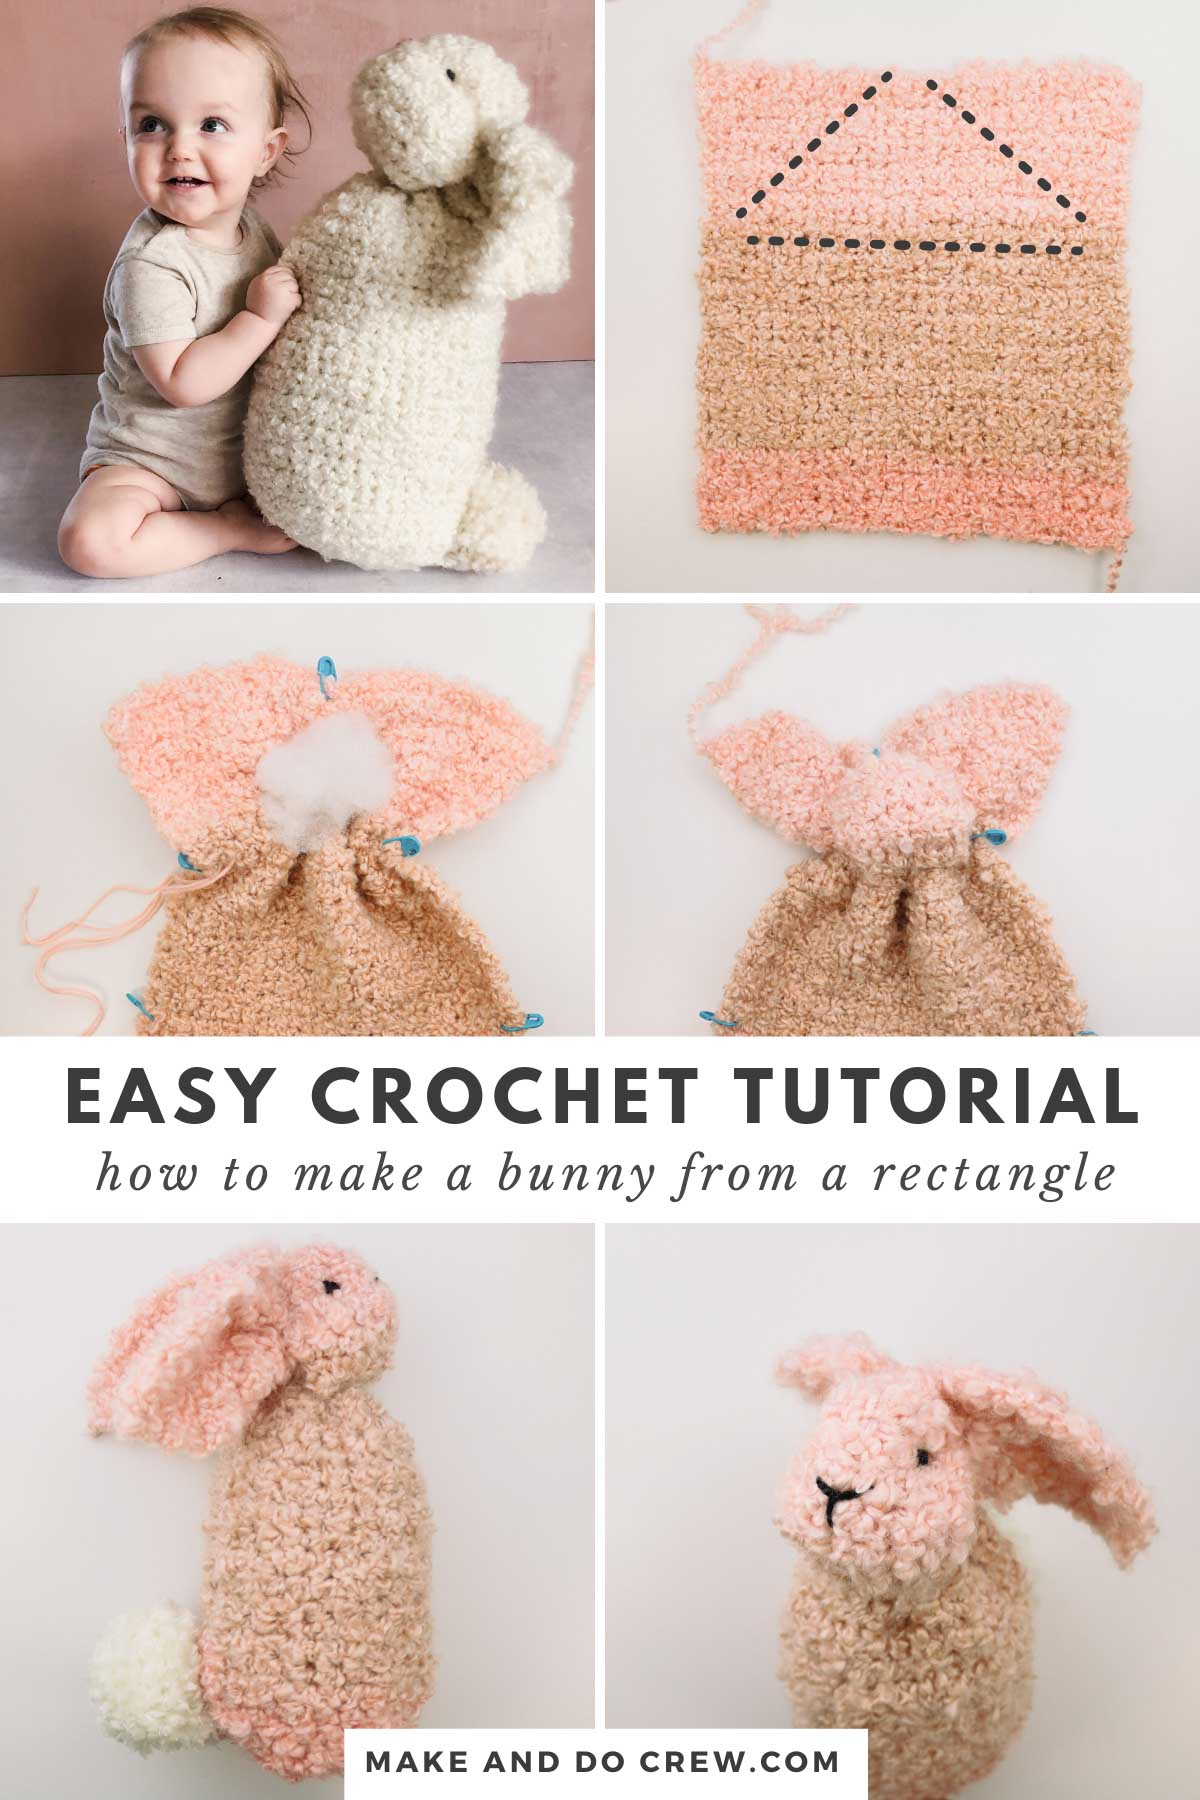 Step-by-step tutorial showing how to crochet a bunny from a square. Super easy Easter crochet rabbit pattern!